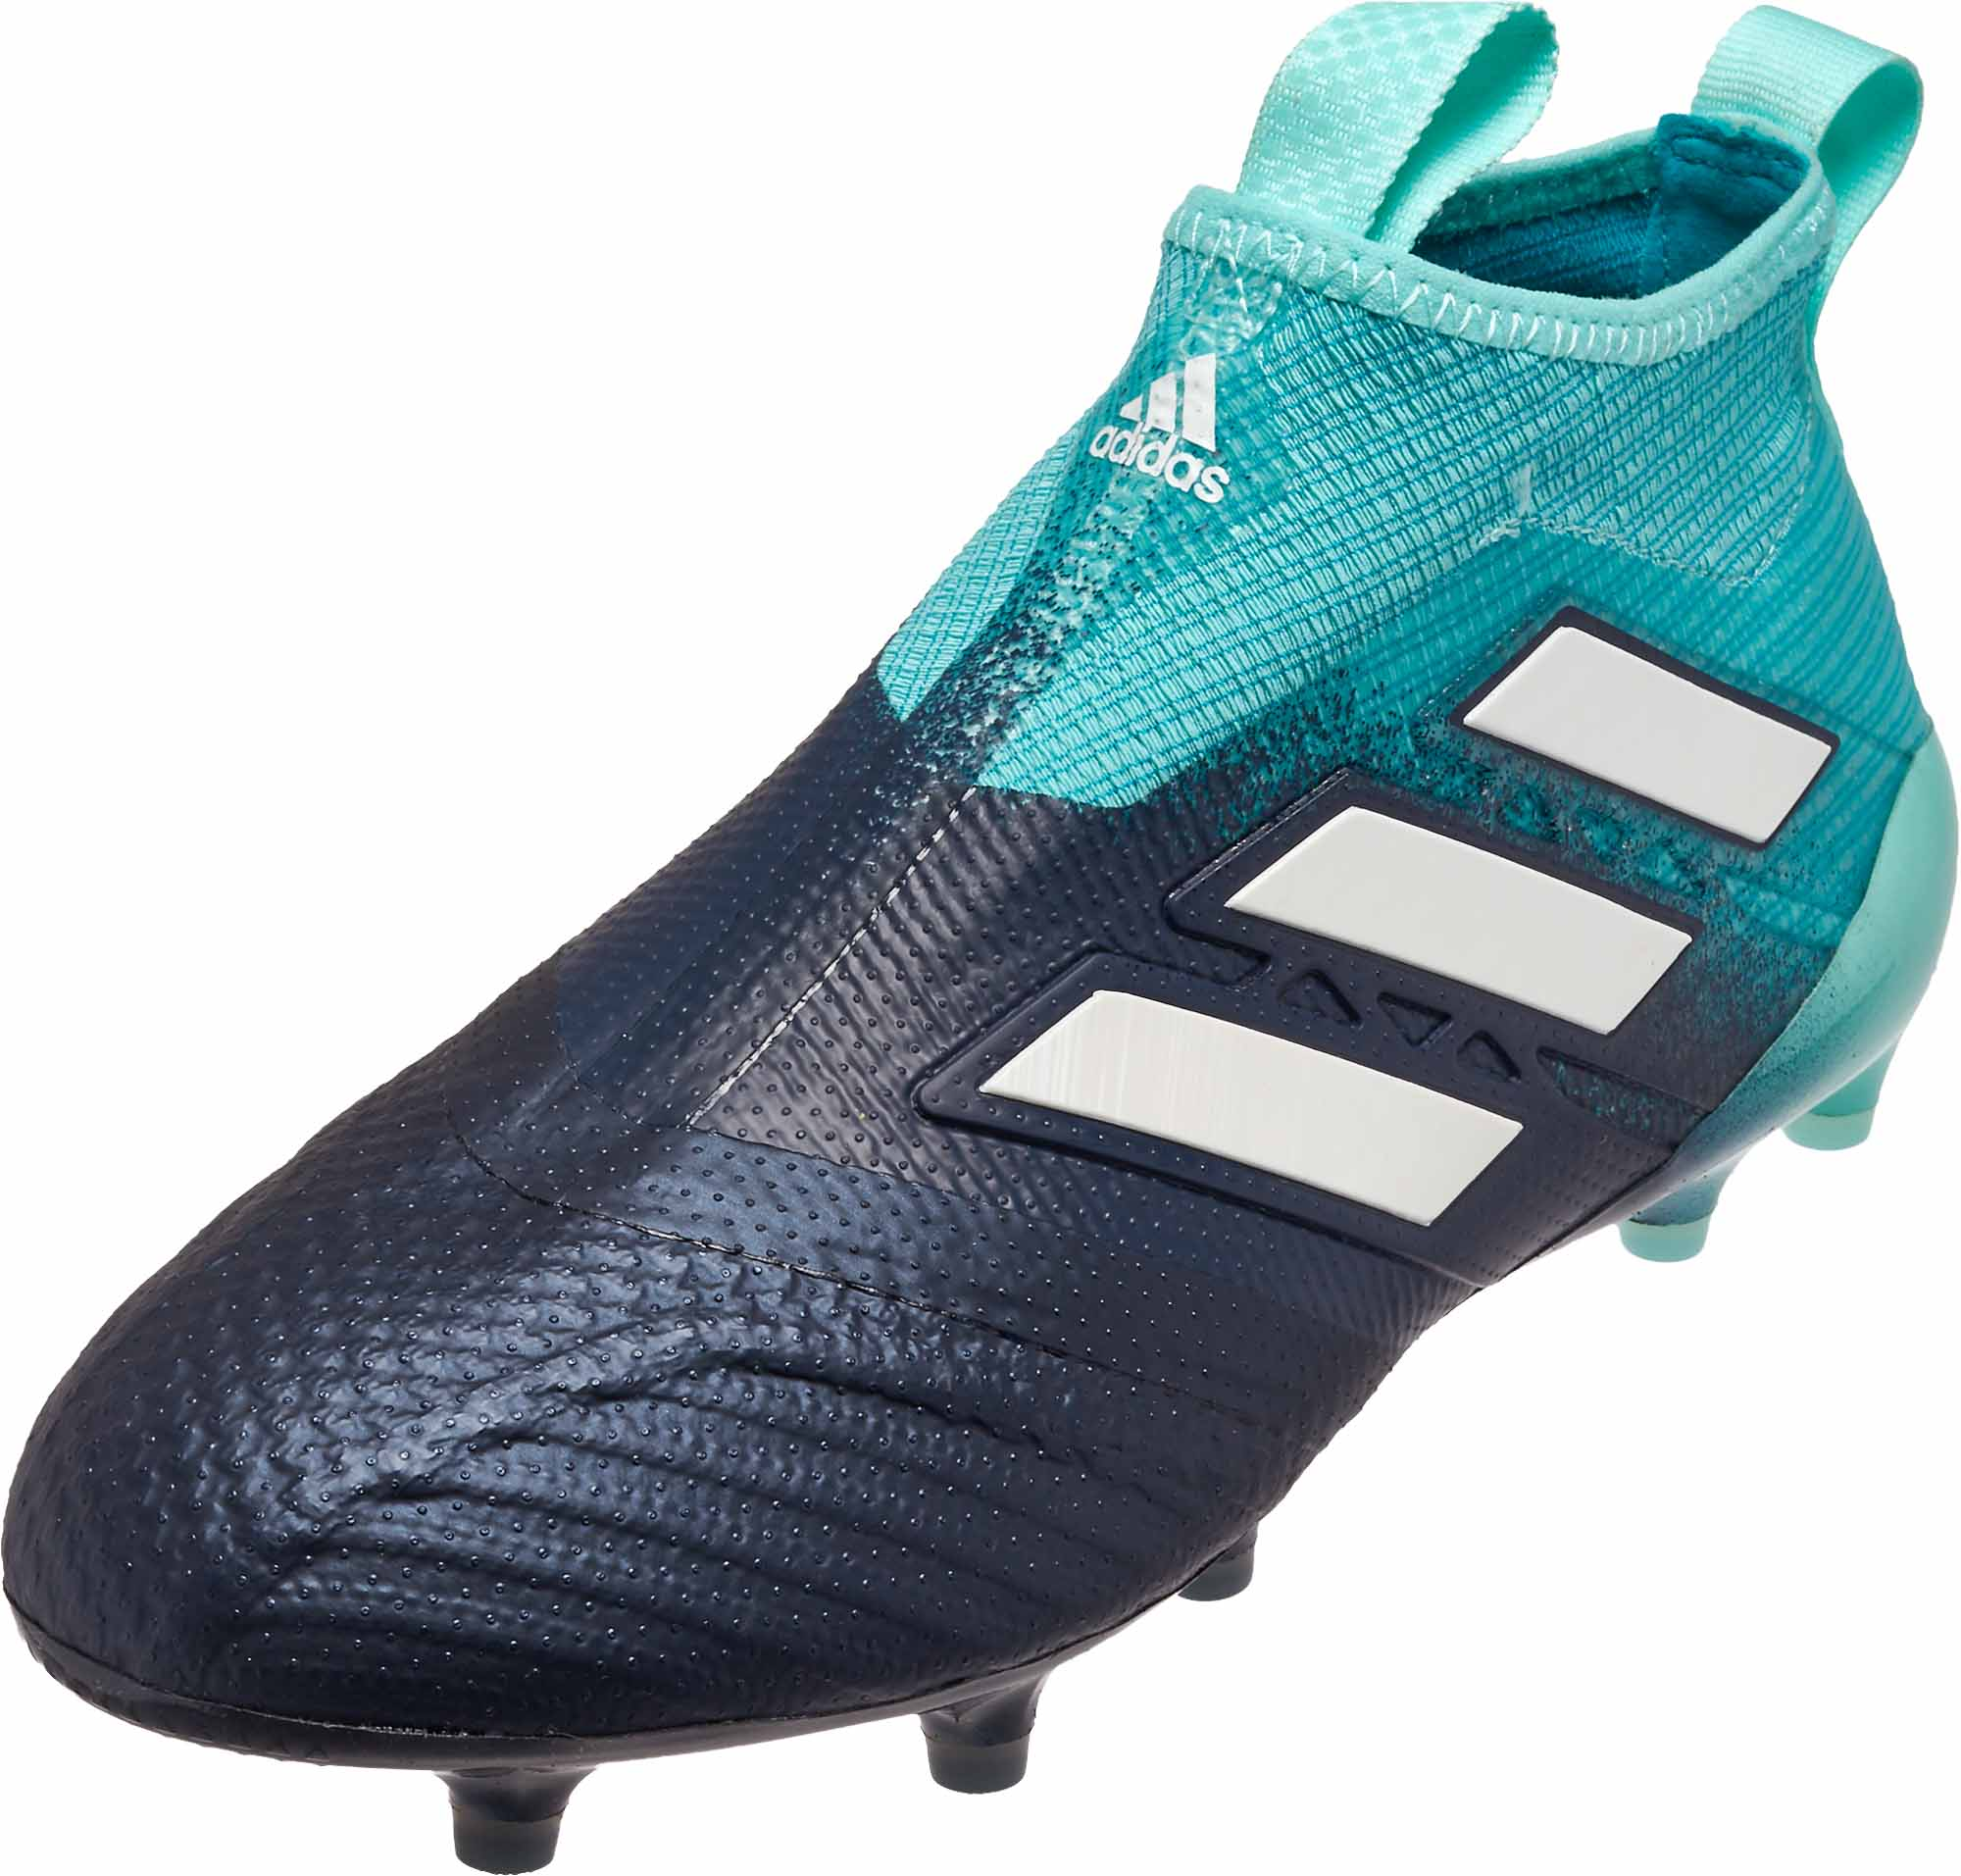 adidas ACE 17 Purecontrol FG – Energy Aqua/Legend Ink